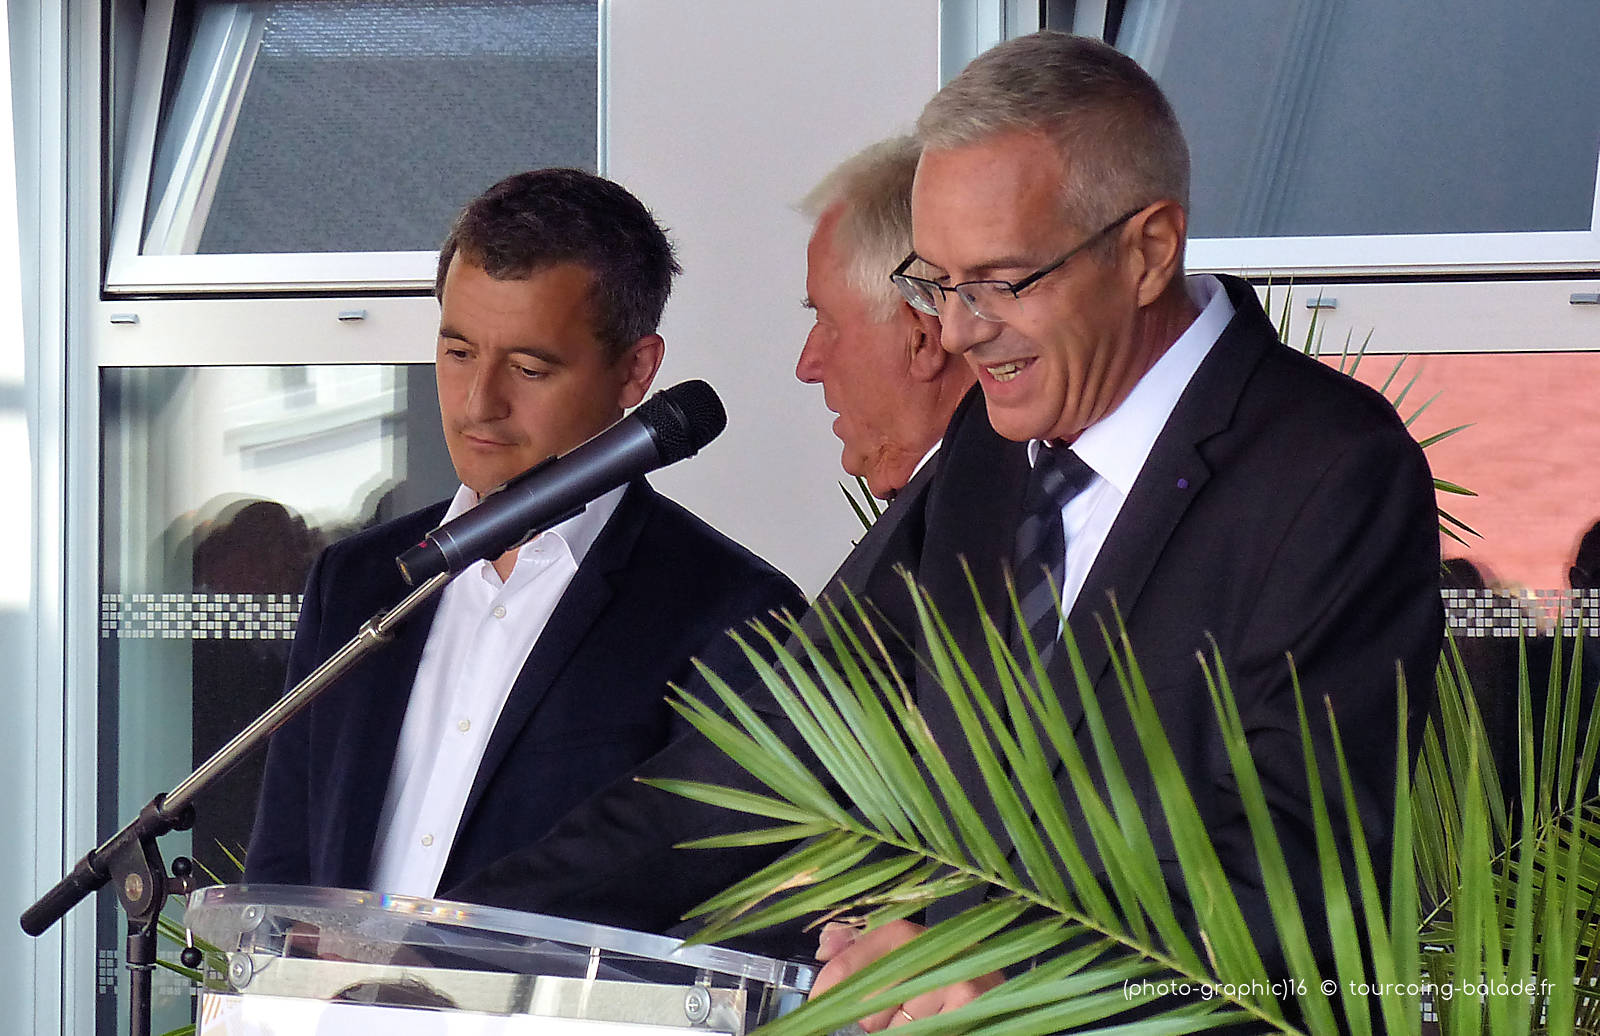 Jean-Yves Bessol - Inauguration École de Gaulle, Tourcoing, août 2019